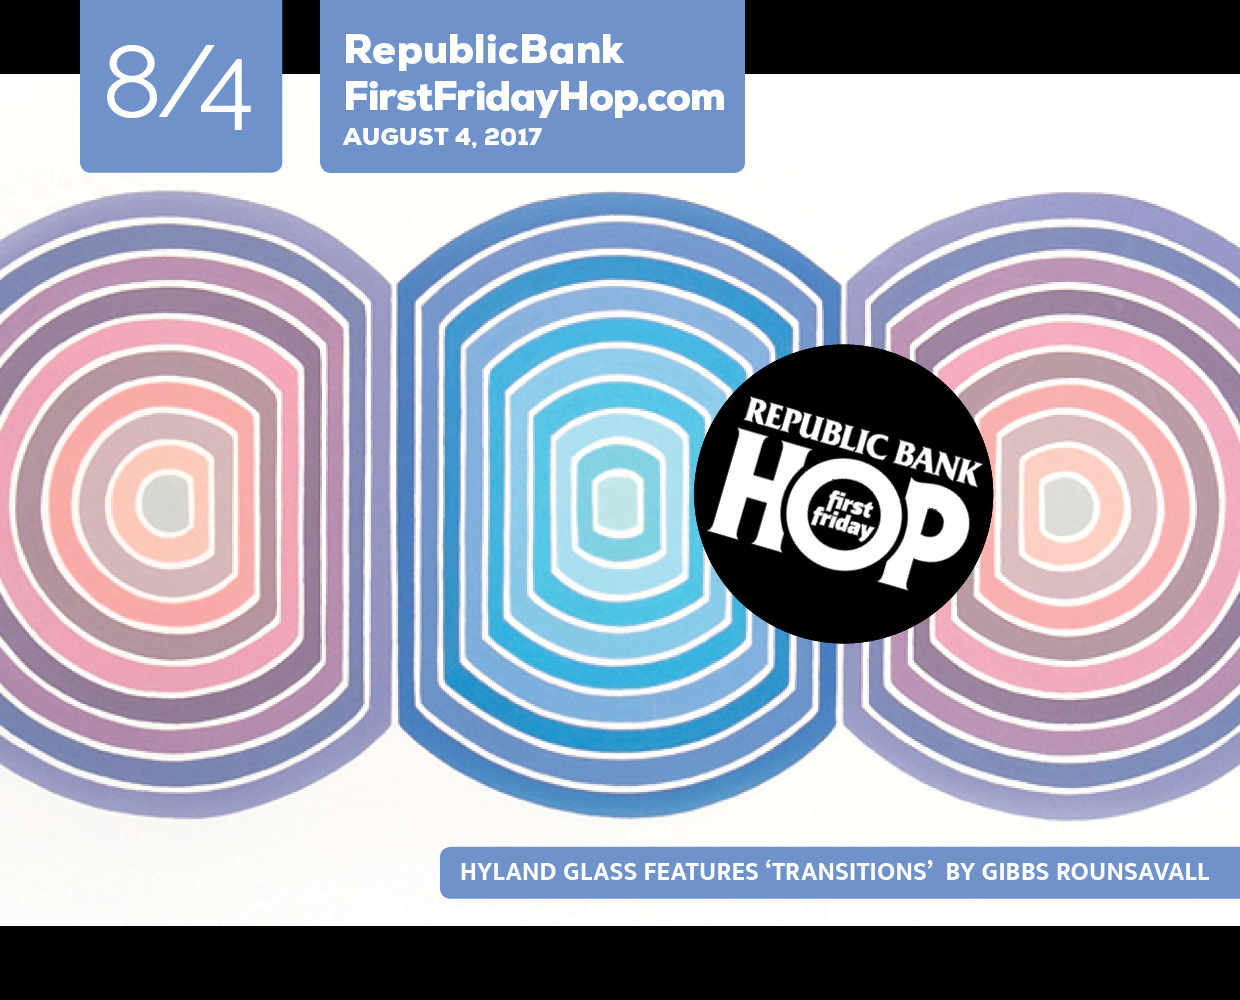 Republic Bank First Friday Hop August 4 2017